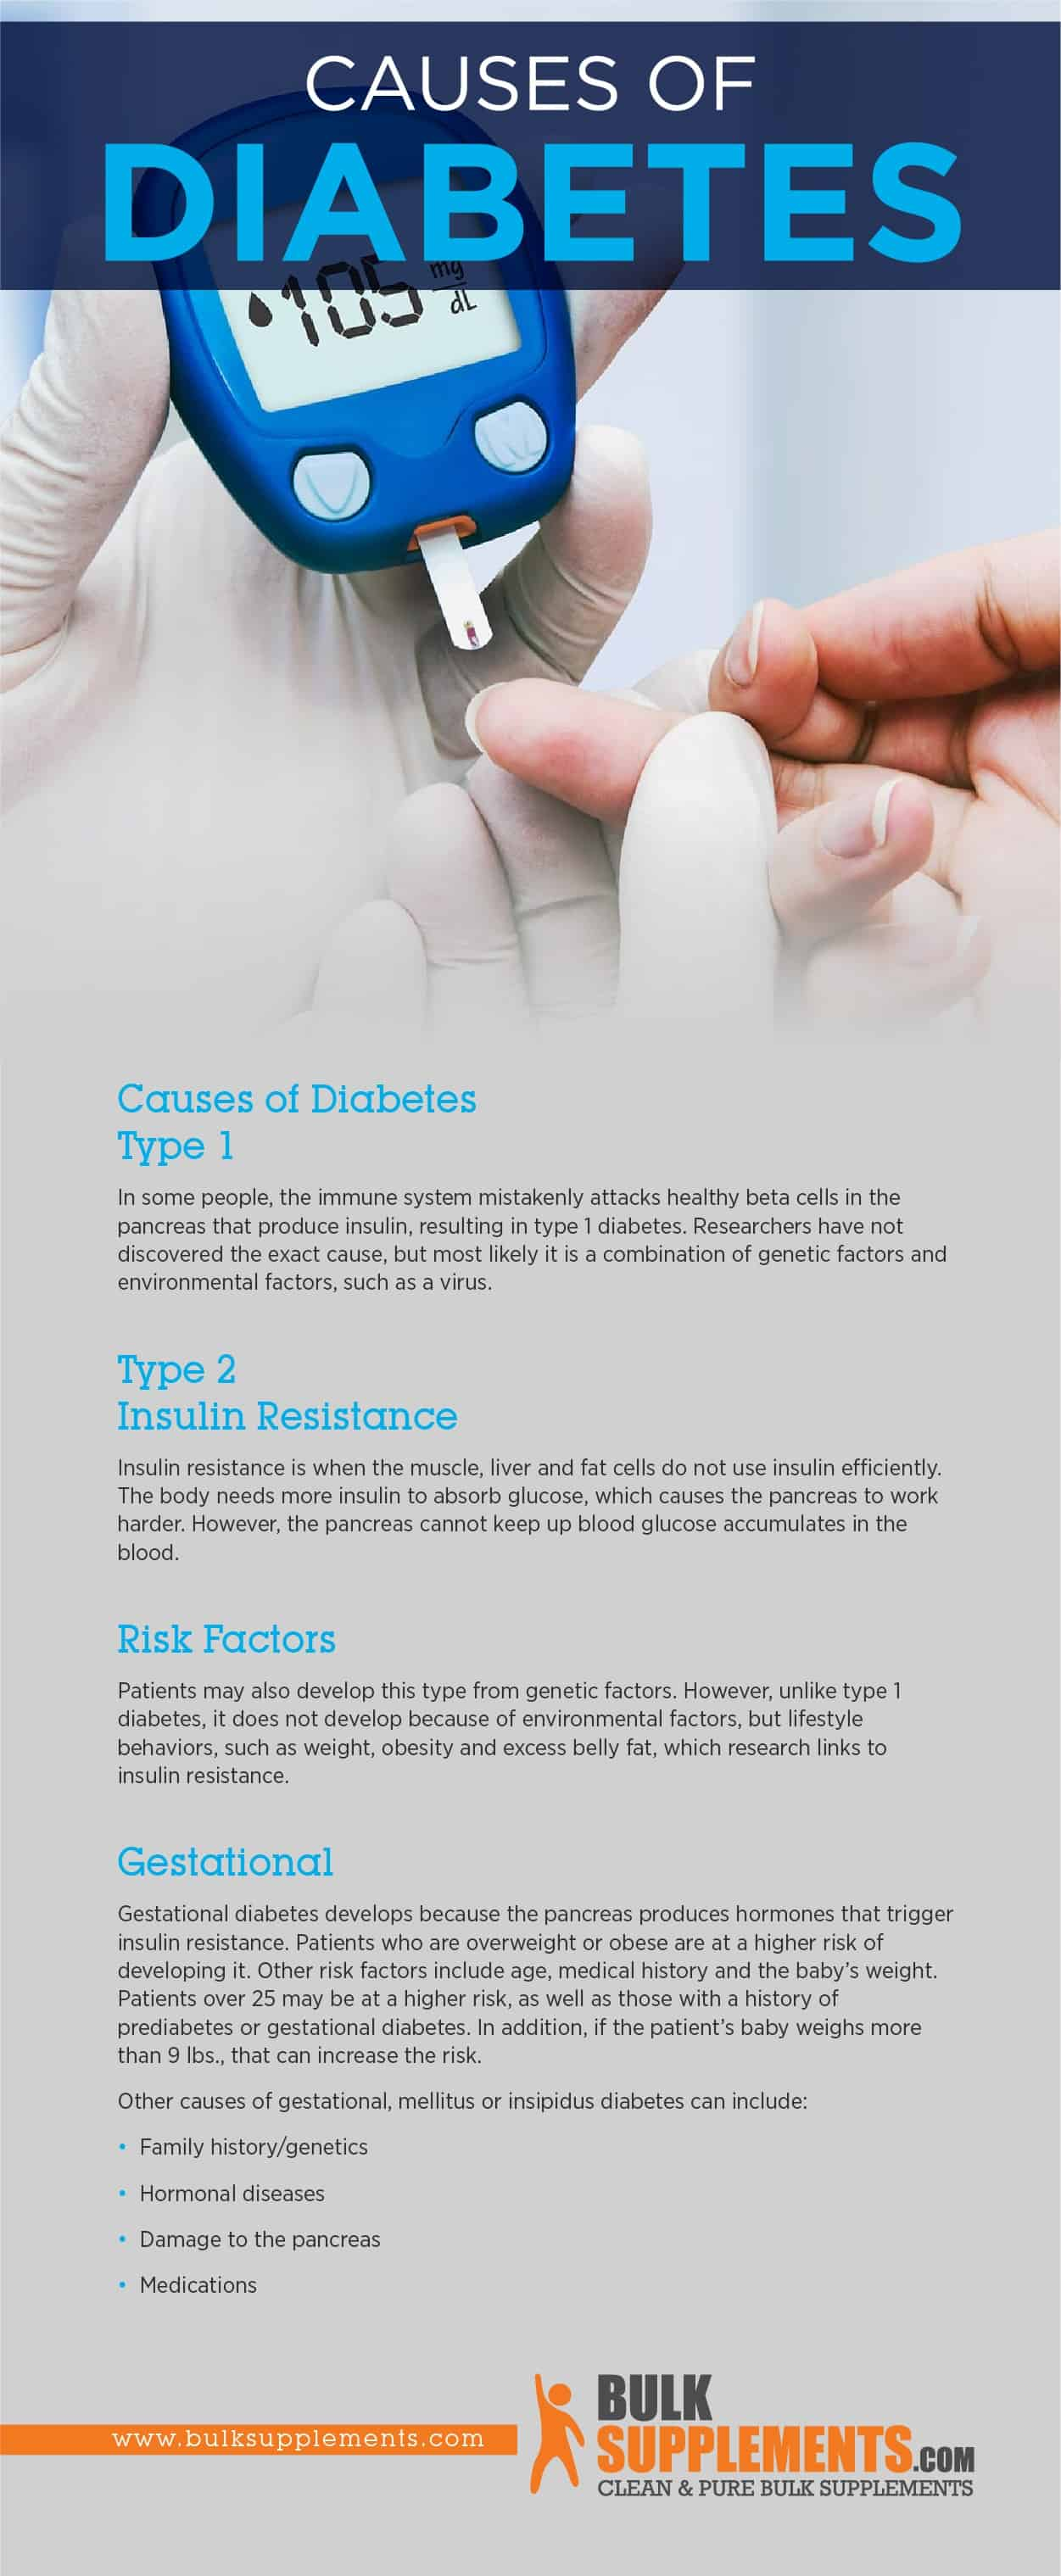 Causes of Diabetes